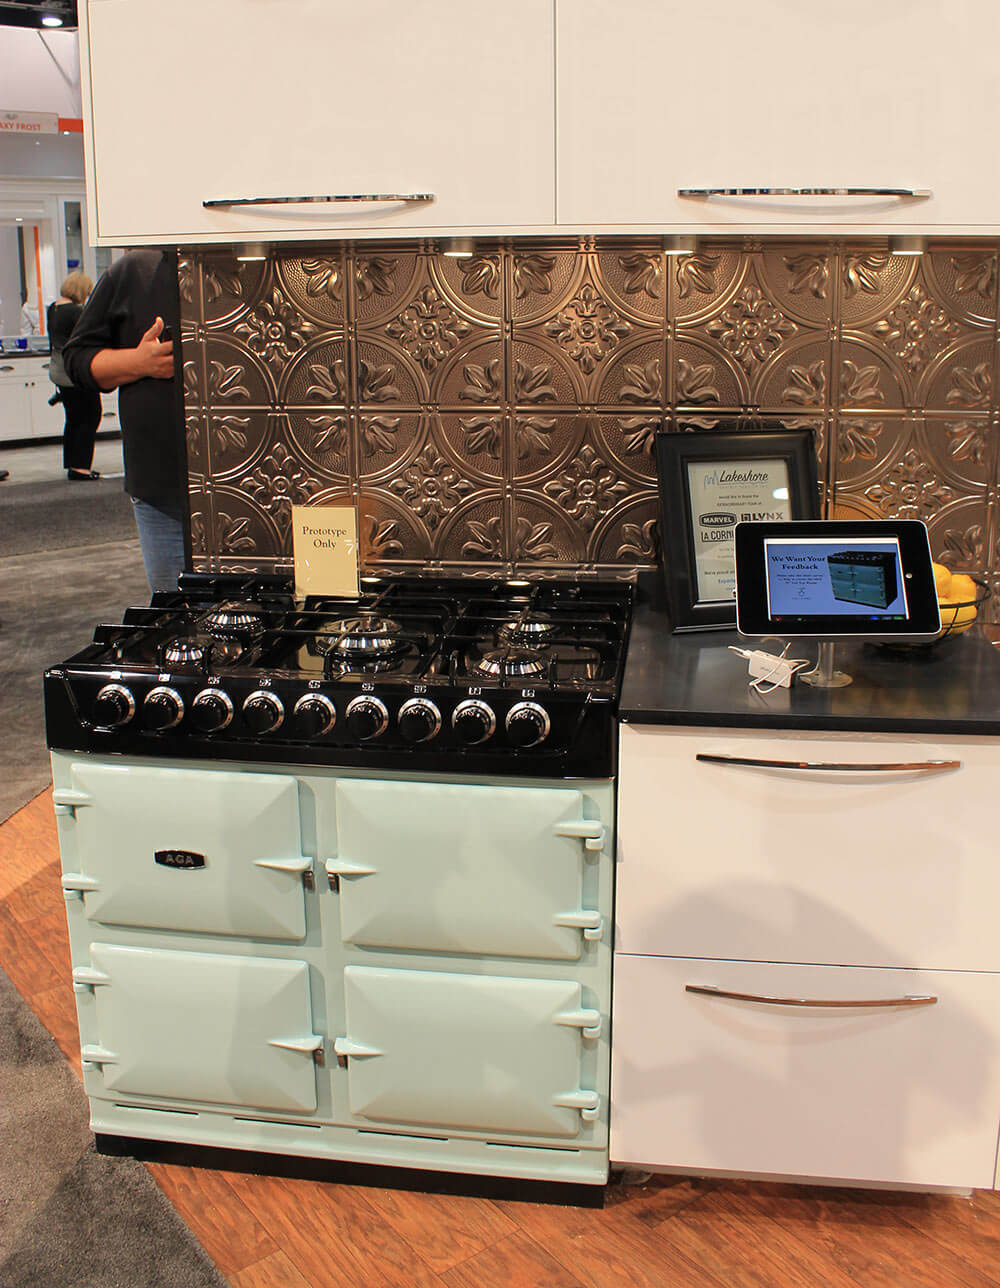 Aga Colorful Ranges And A Retro Kitchen At Kbis Retro